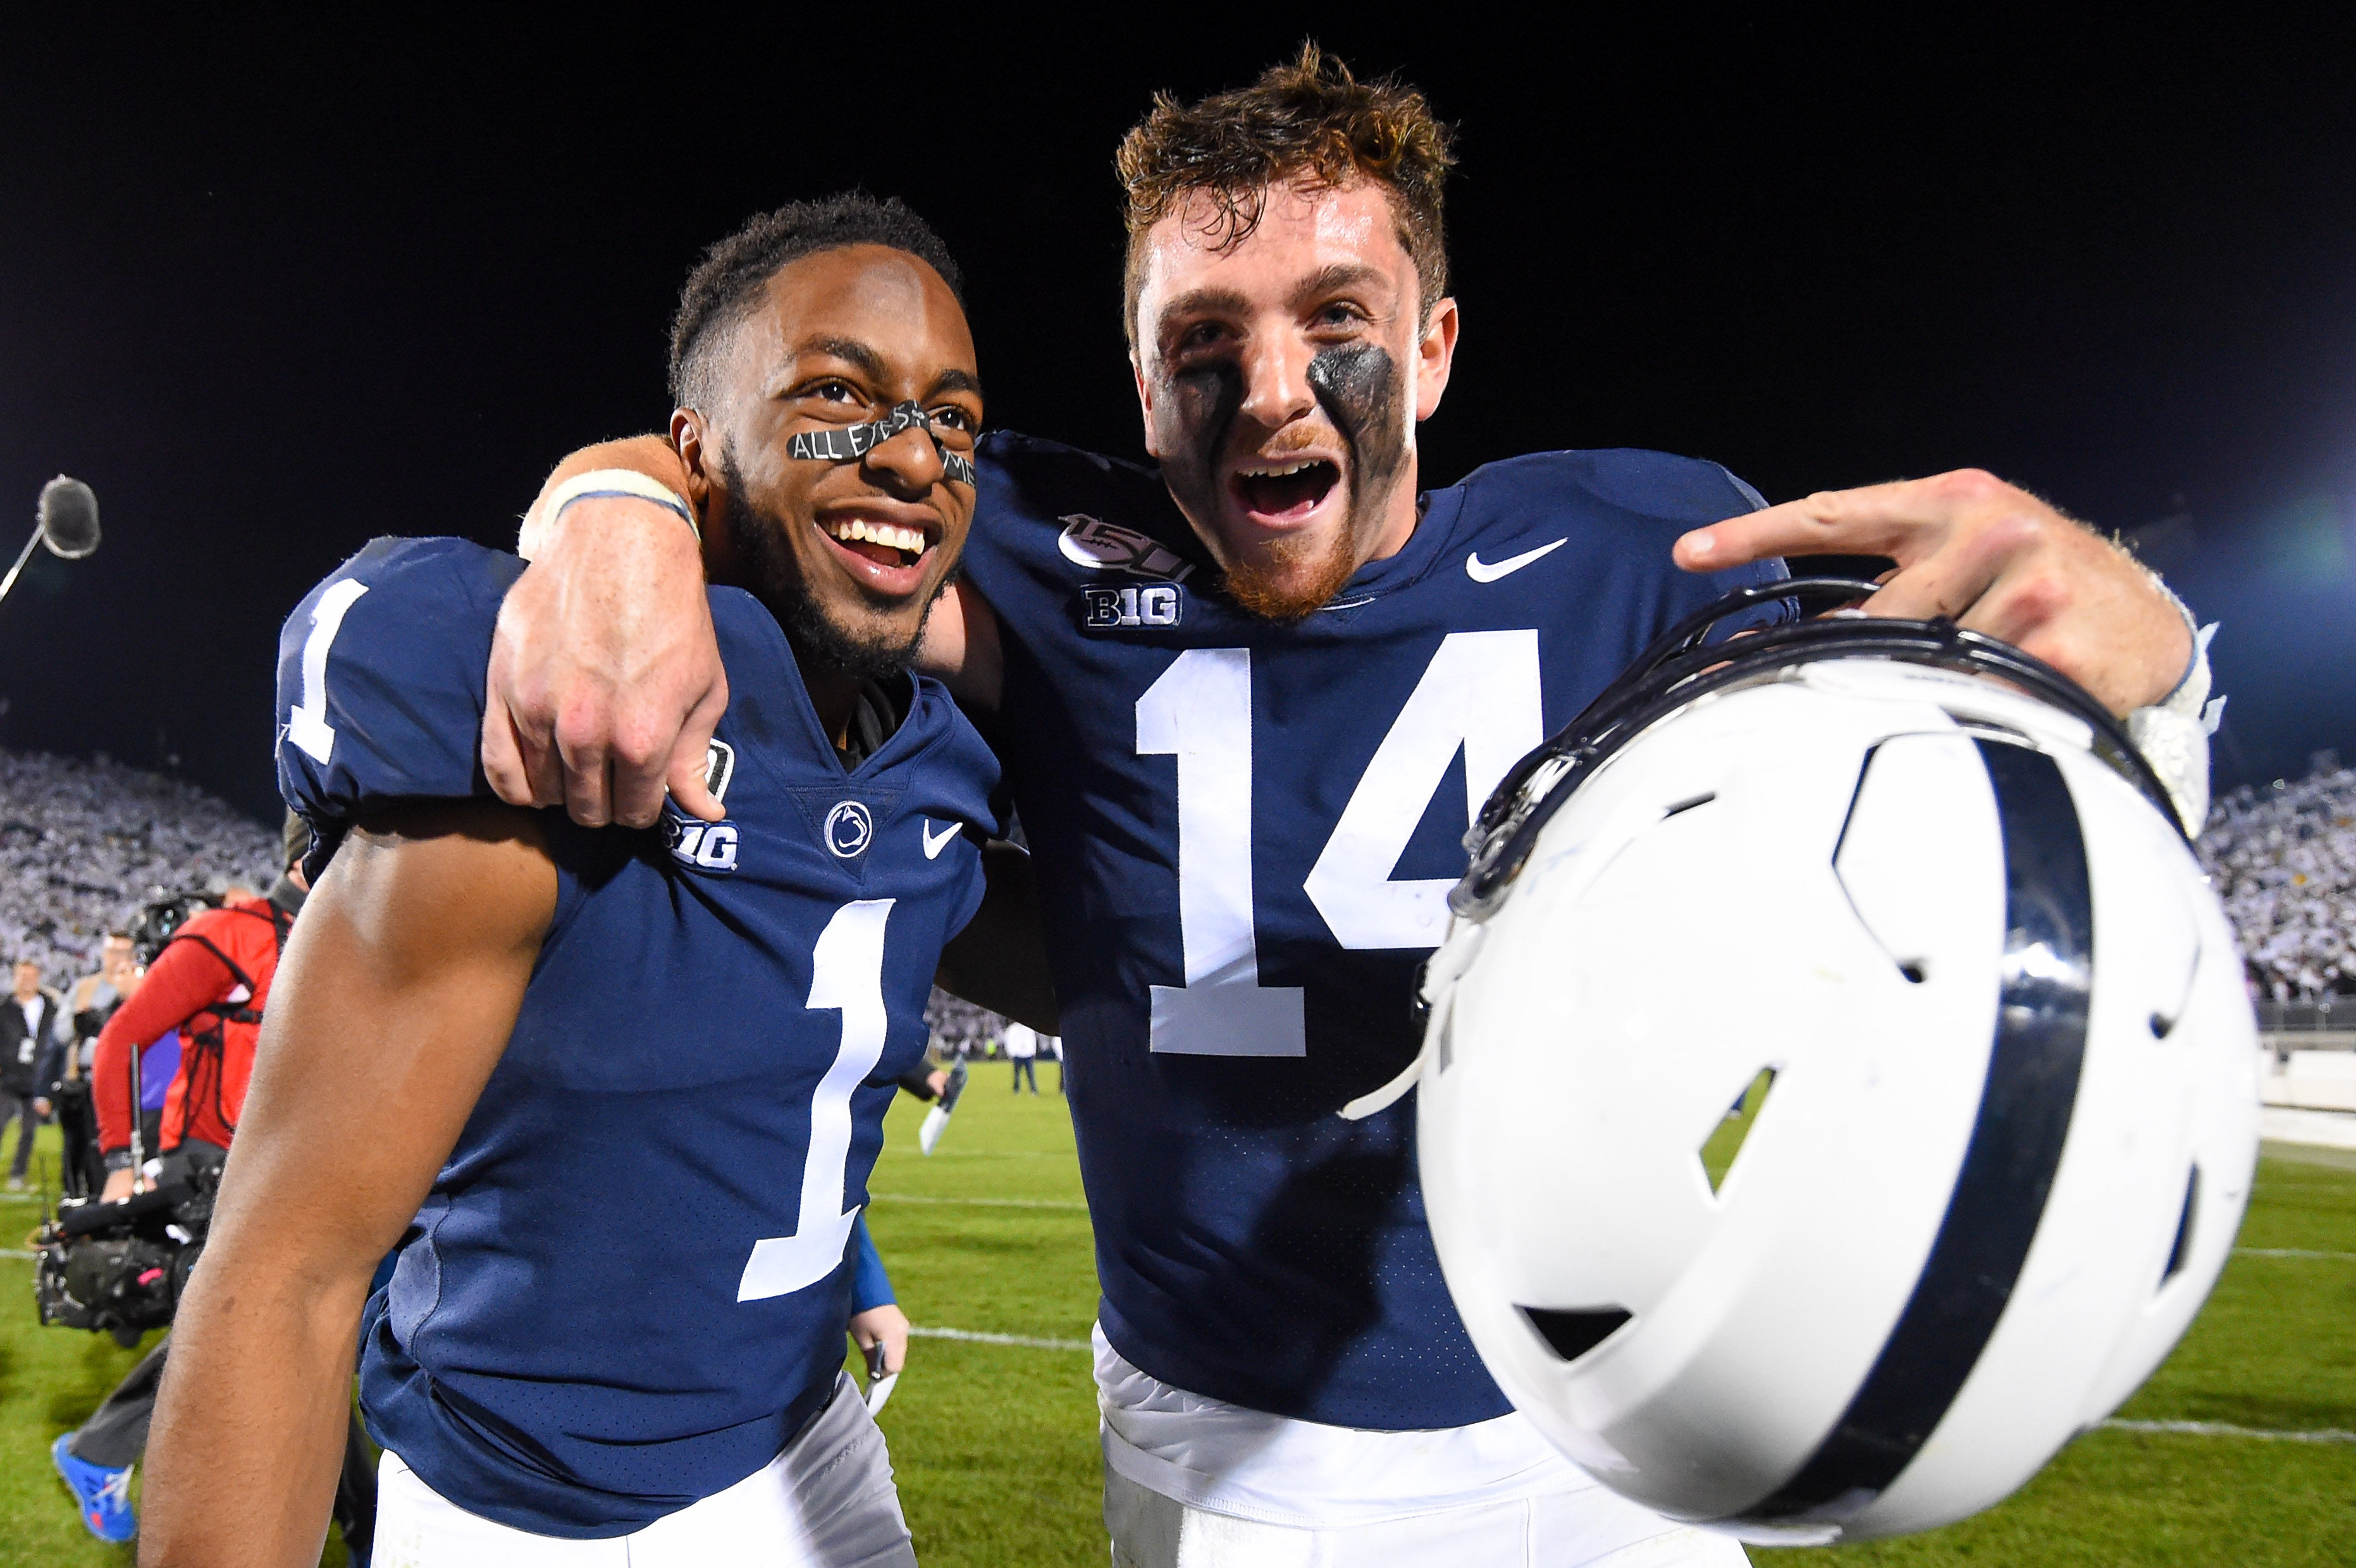 Ohio State, Penn State move up in latest AP top 25 poll